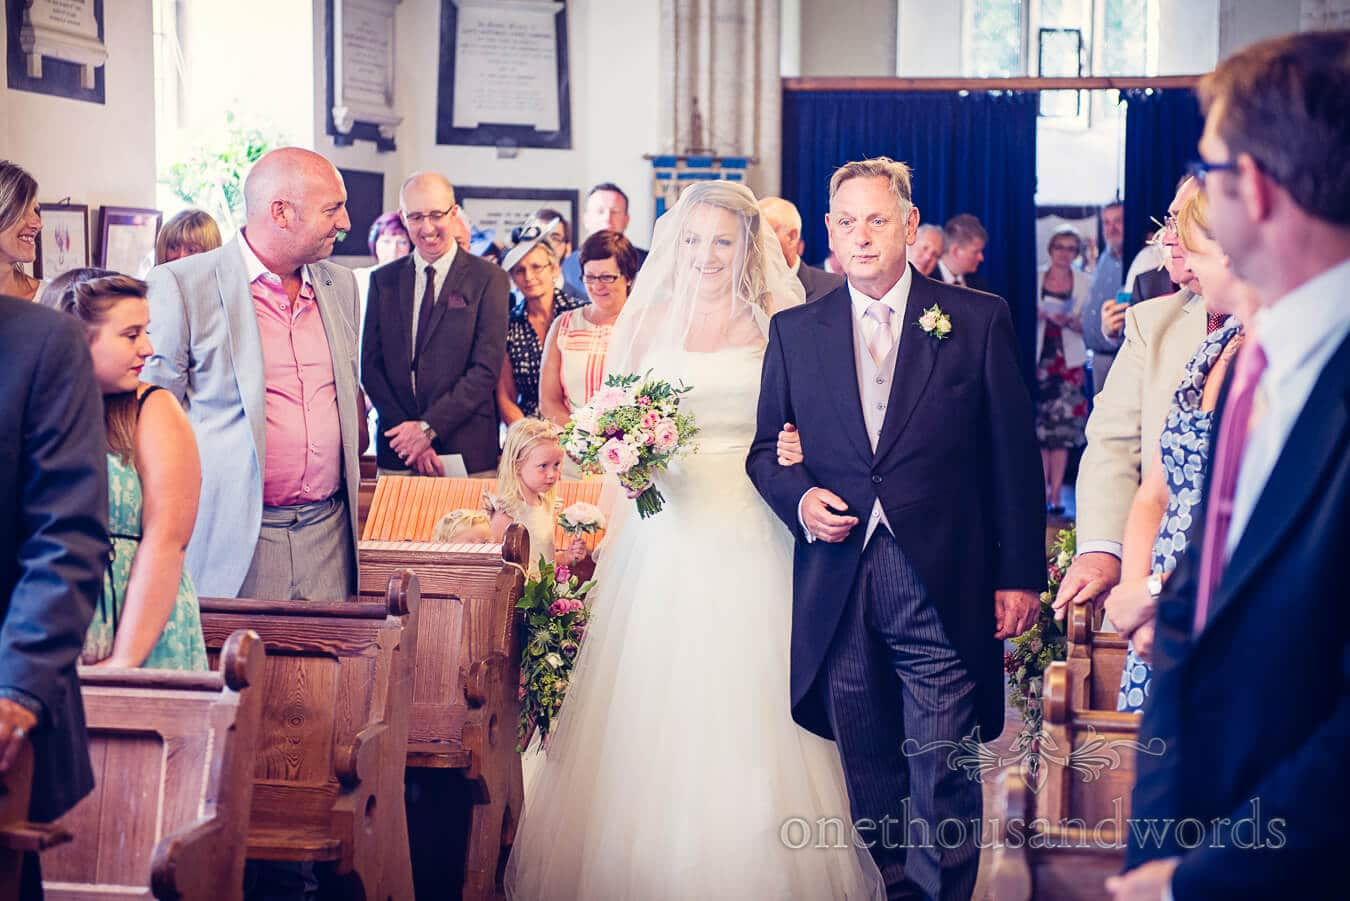 Bride and father walk down aisle at countryside church wedding in Martinstown